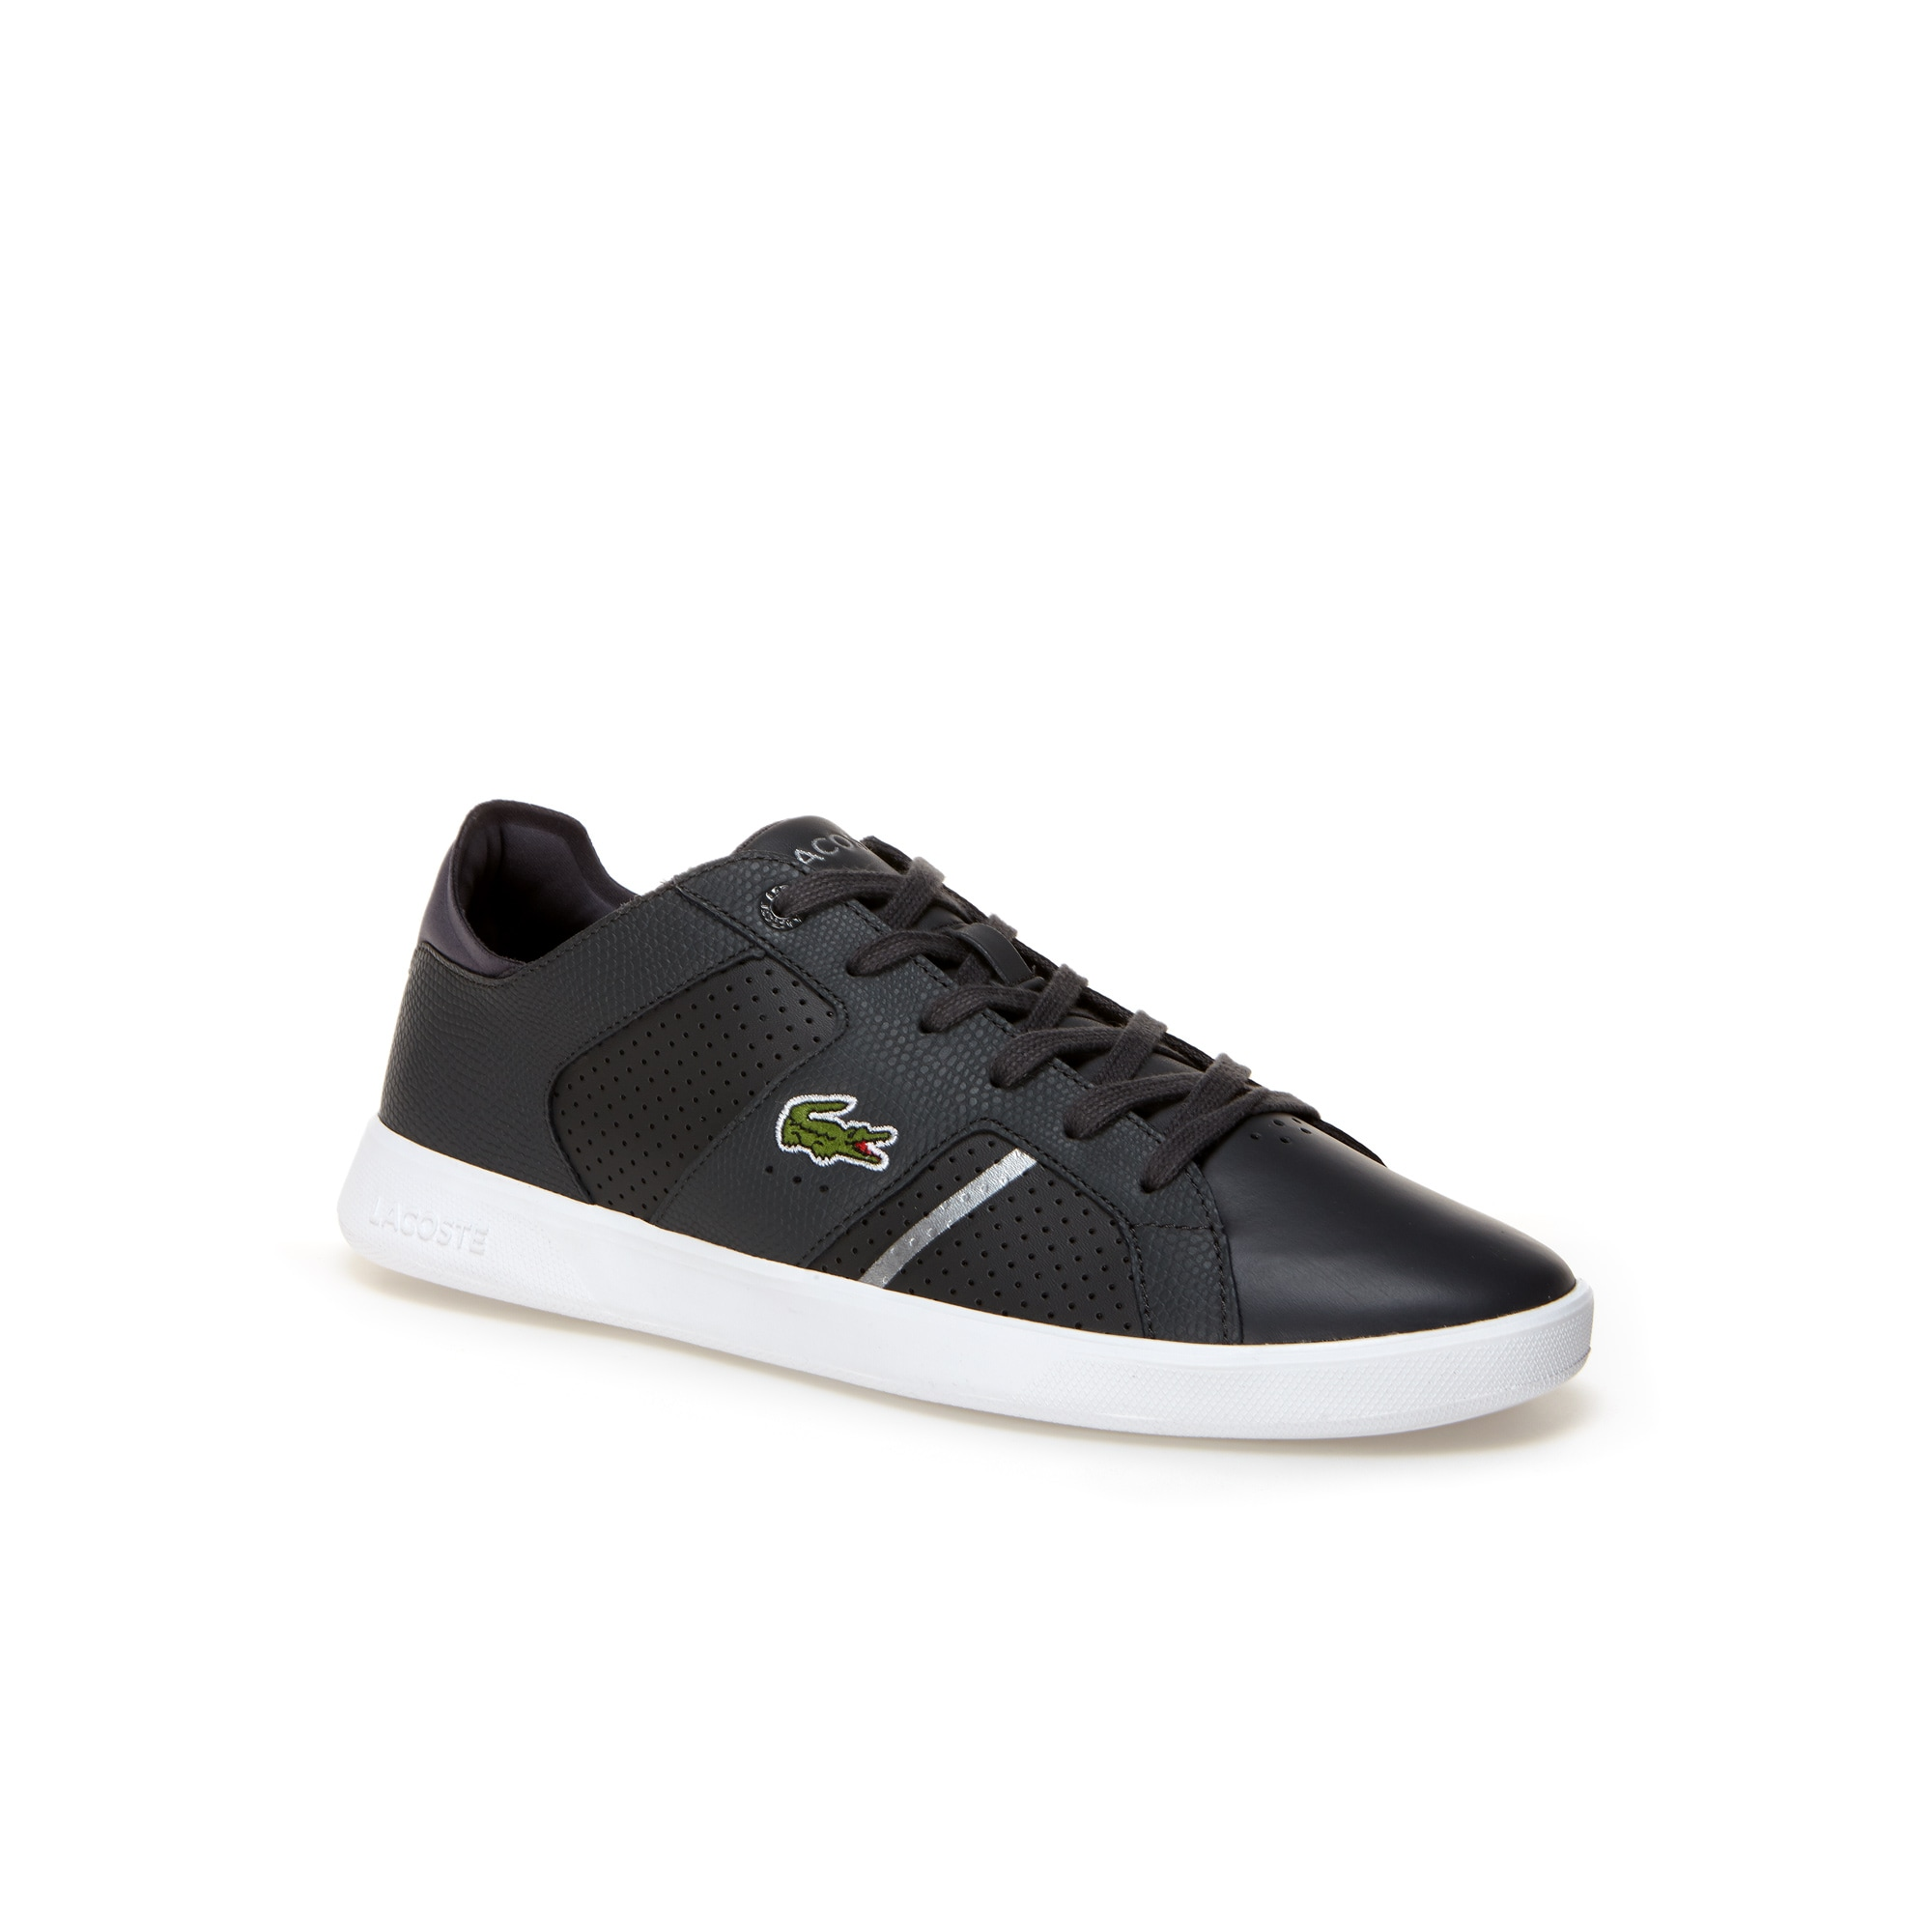 Lacoste MEN'S NOVAS CT LEATHER TRAINERS fAQVDc